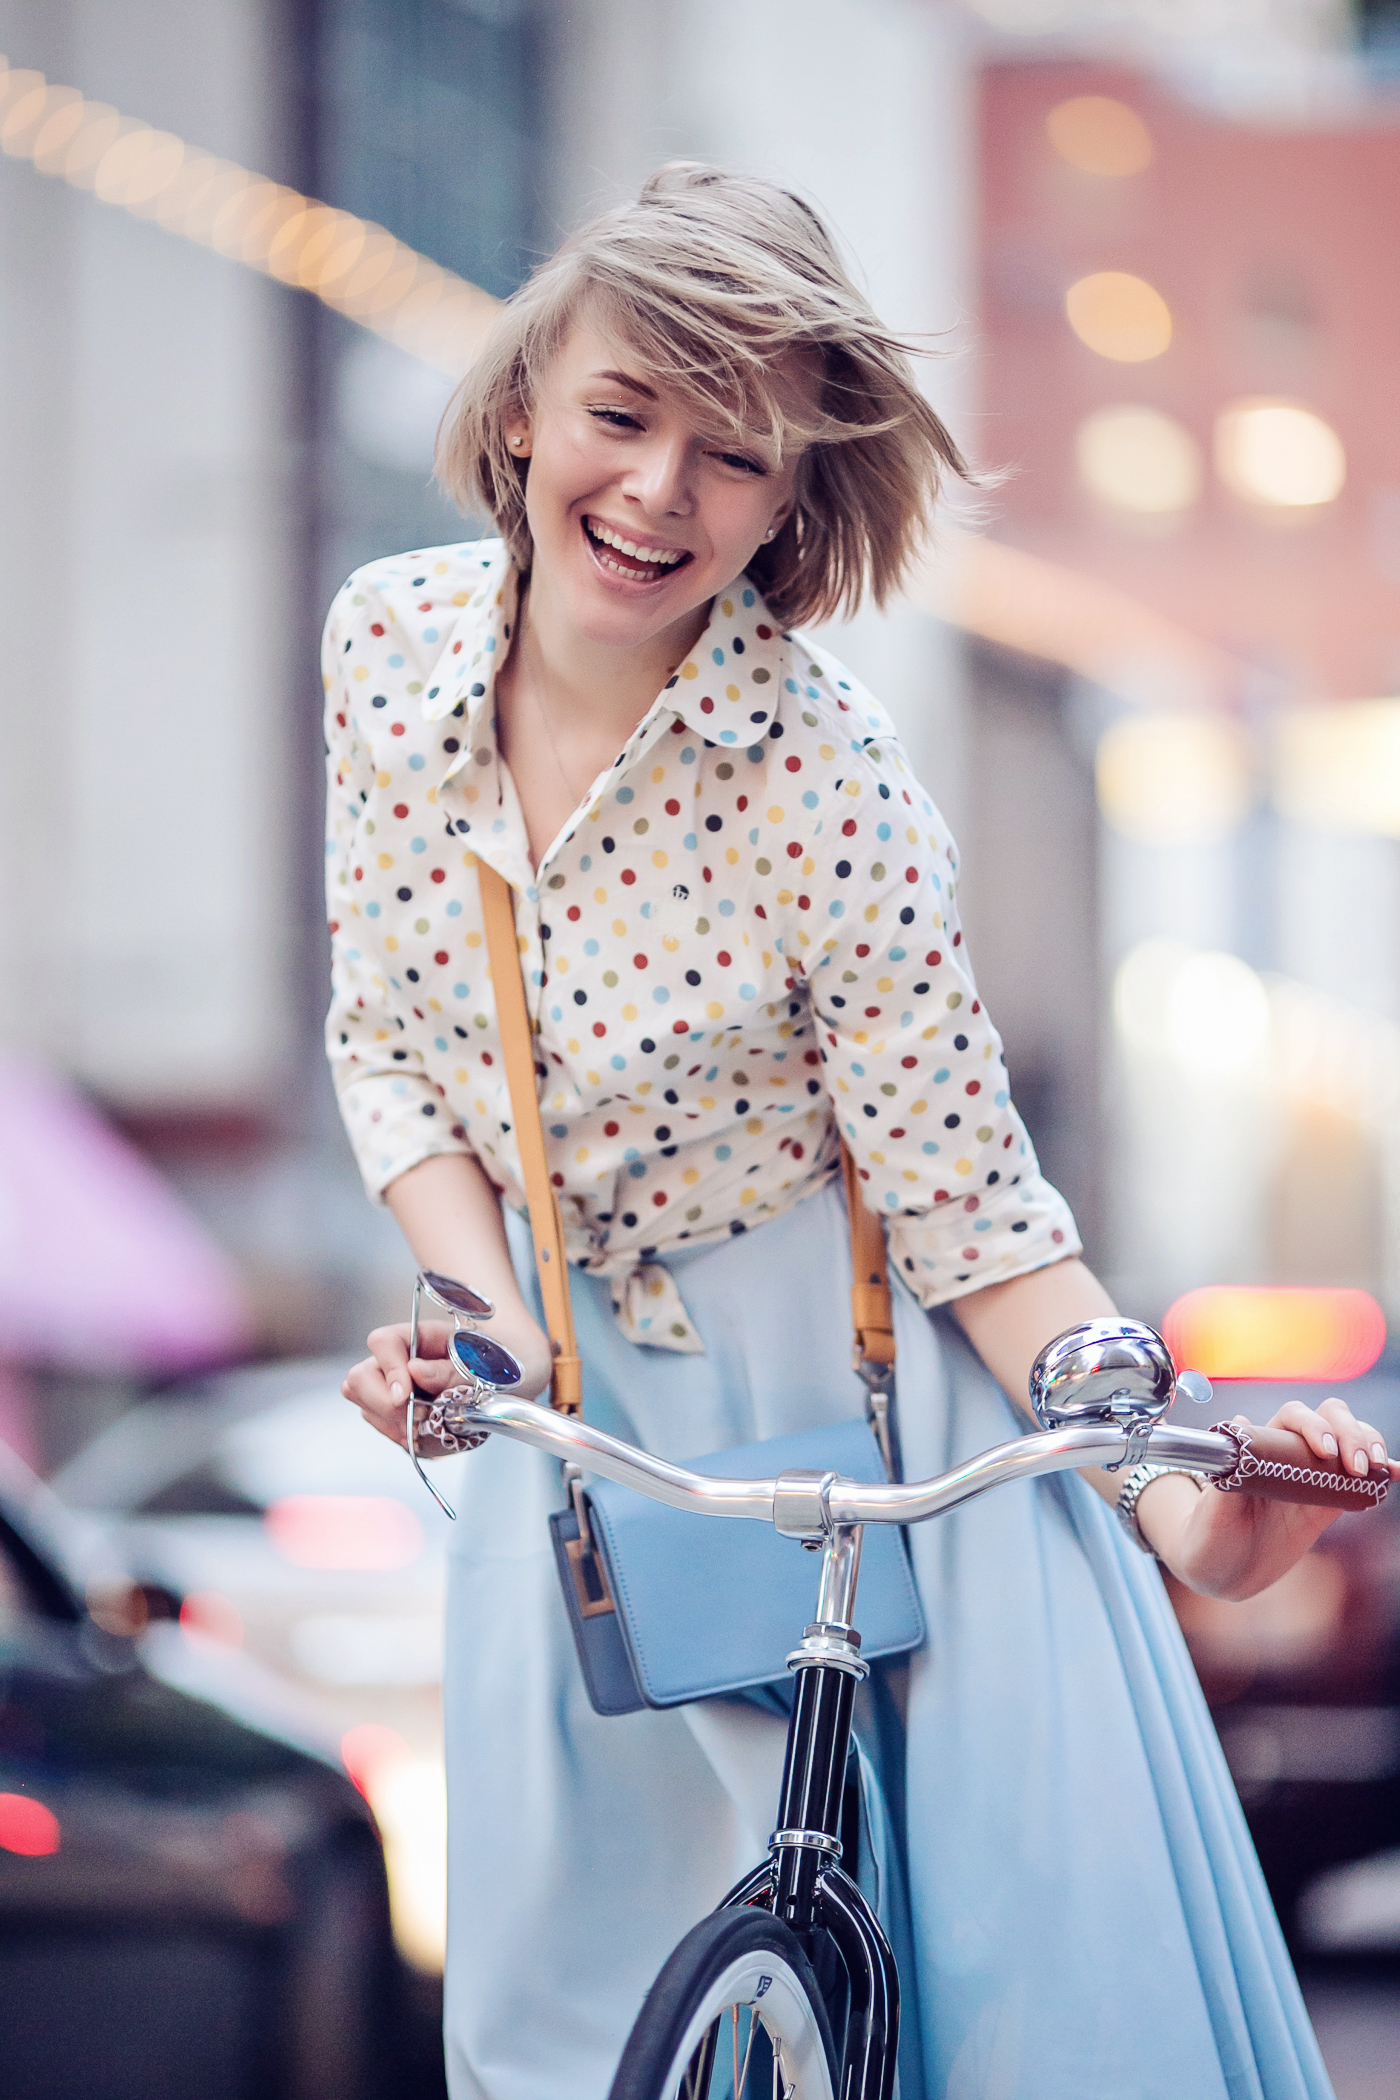 darya kamalova a fashion blogger from thecablook in dallas texas on the bycicle in polka dot shirt and blue skirt with gold espadrilles and other storie bag for rewardstyle rsthecon-48